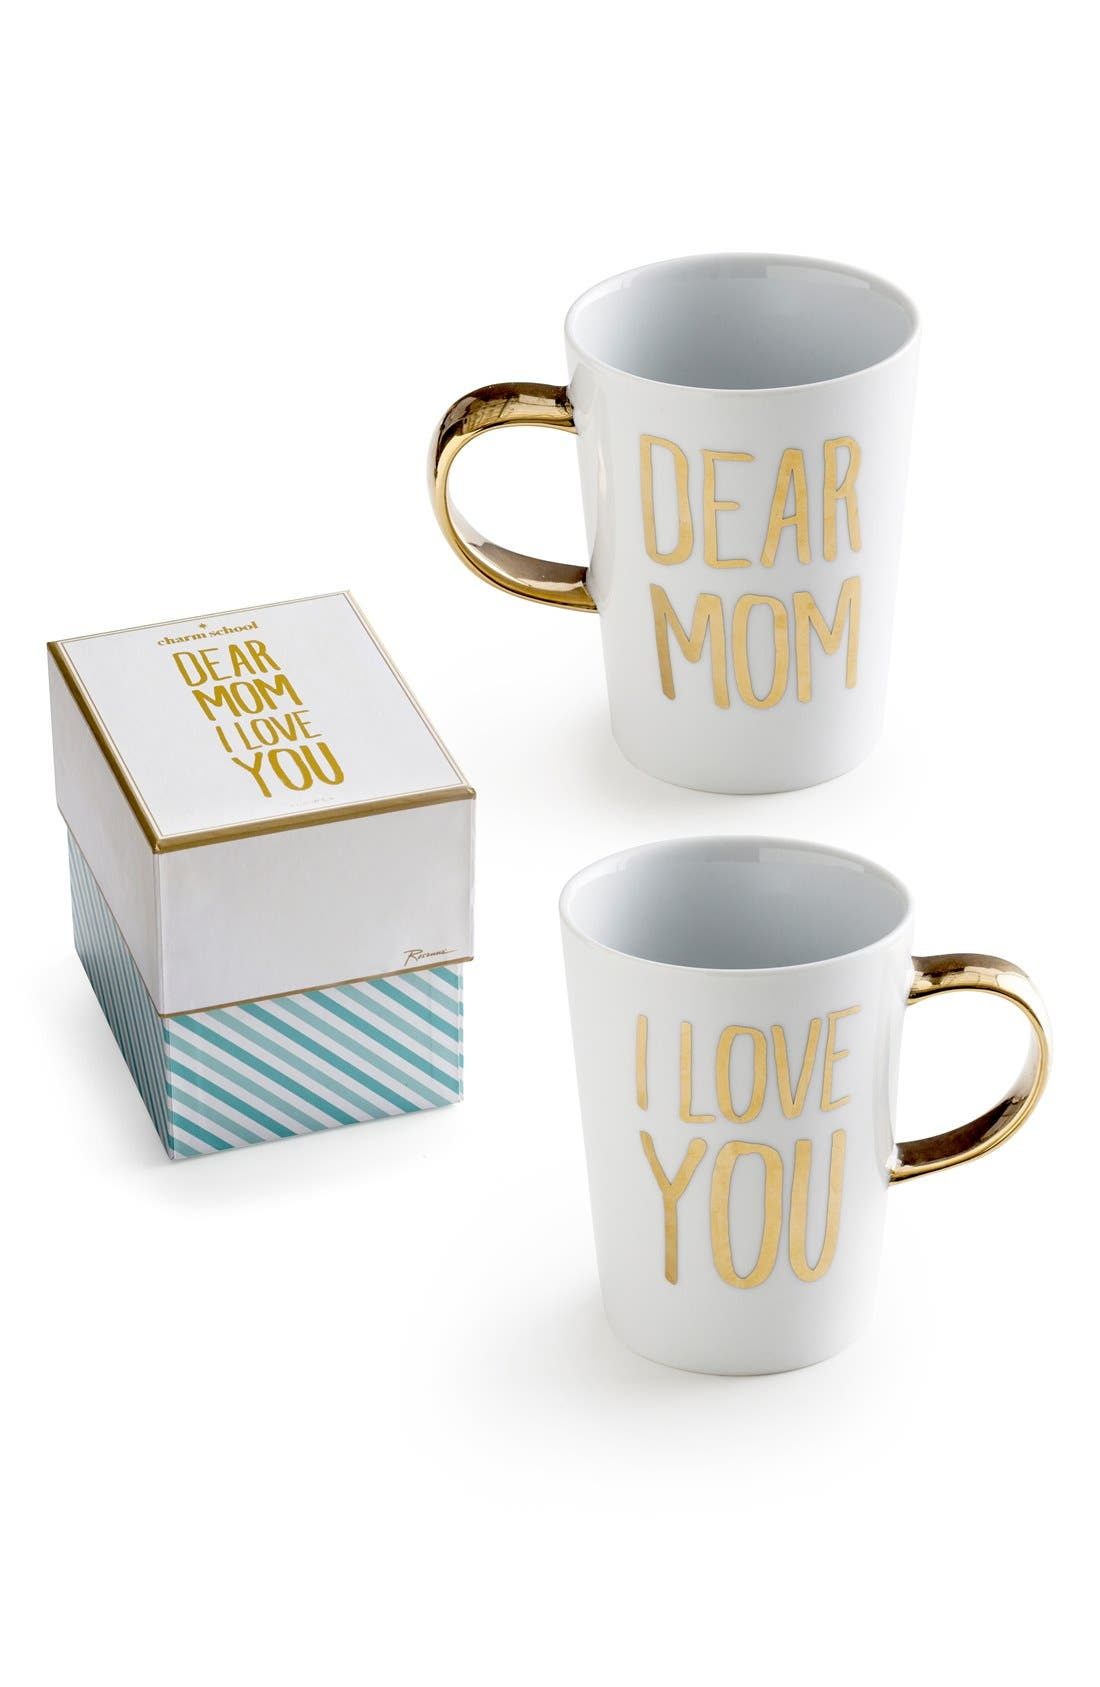 'Dear Mom I Love You' Porcelain Coffee Mug,                             Main thumbnail 1, color,                             100